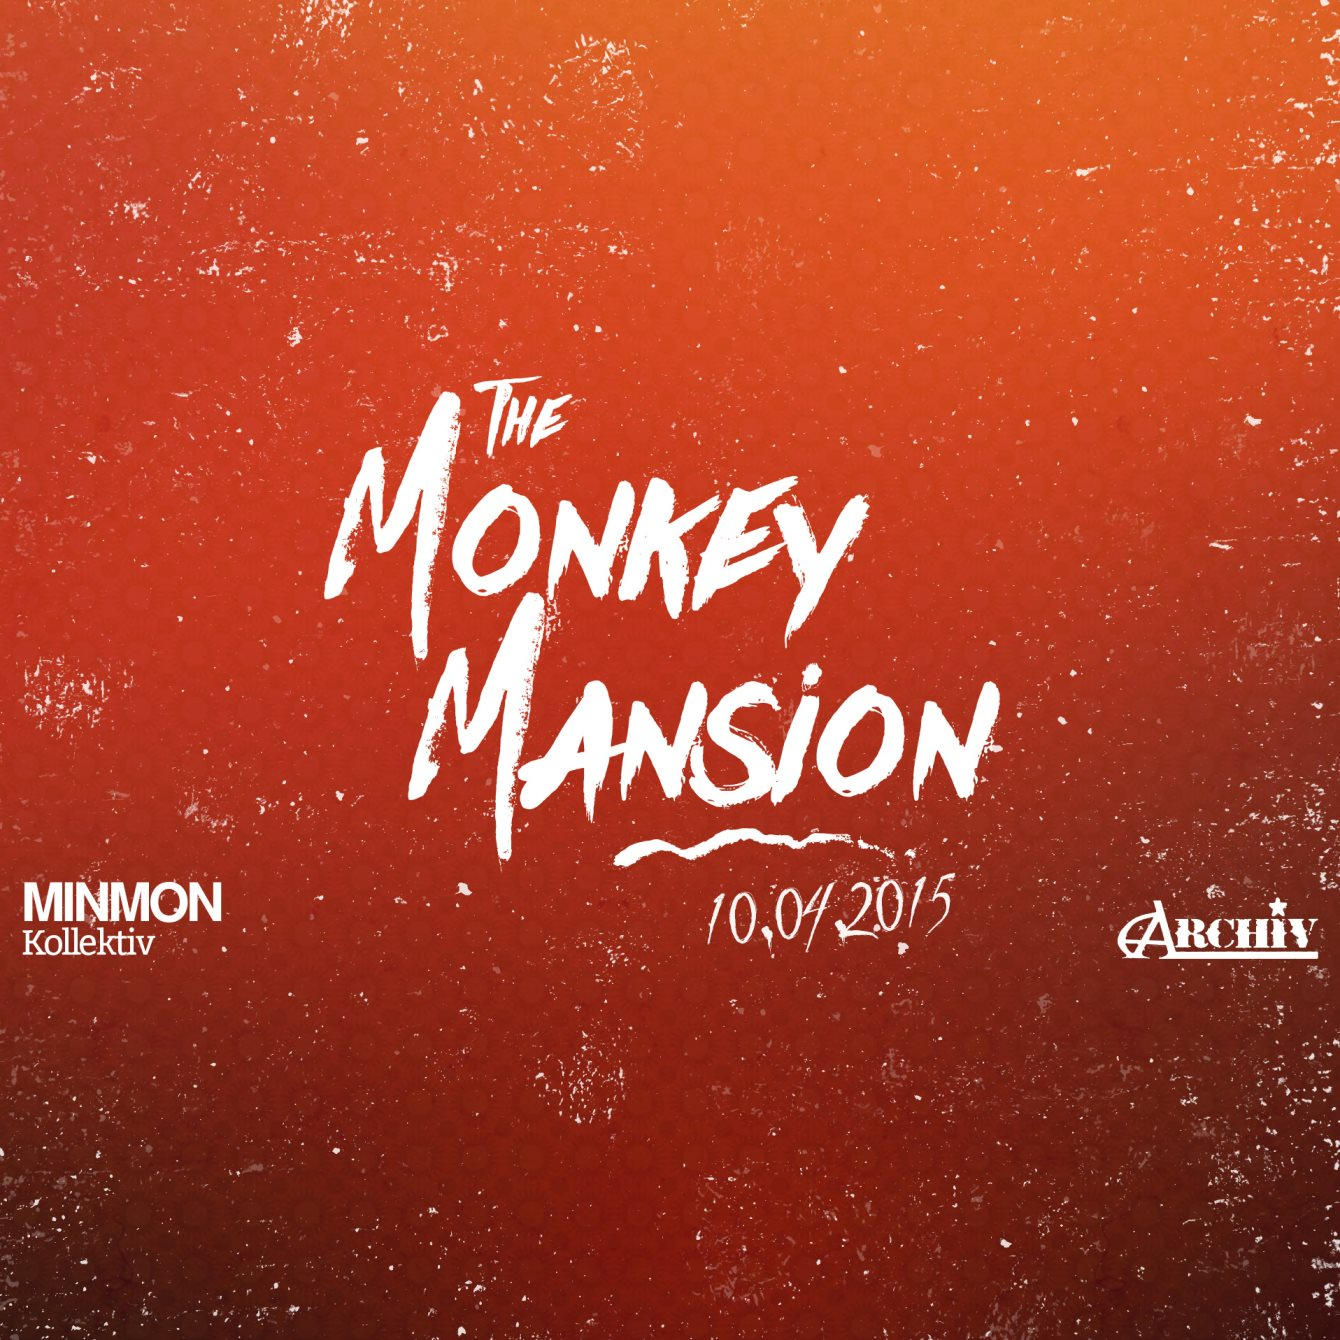 The Monkey Mansion - Flyer front